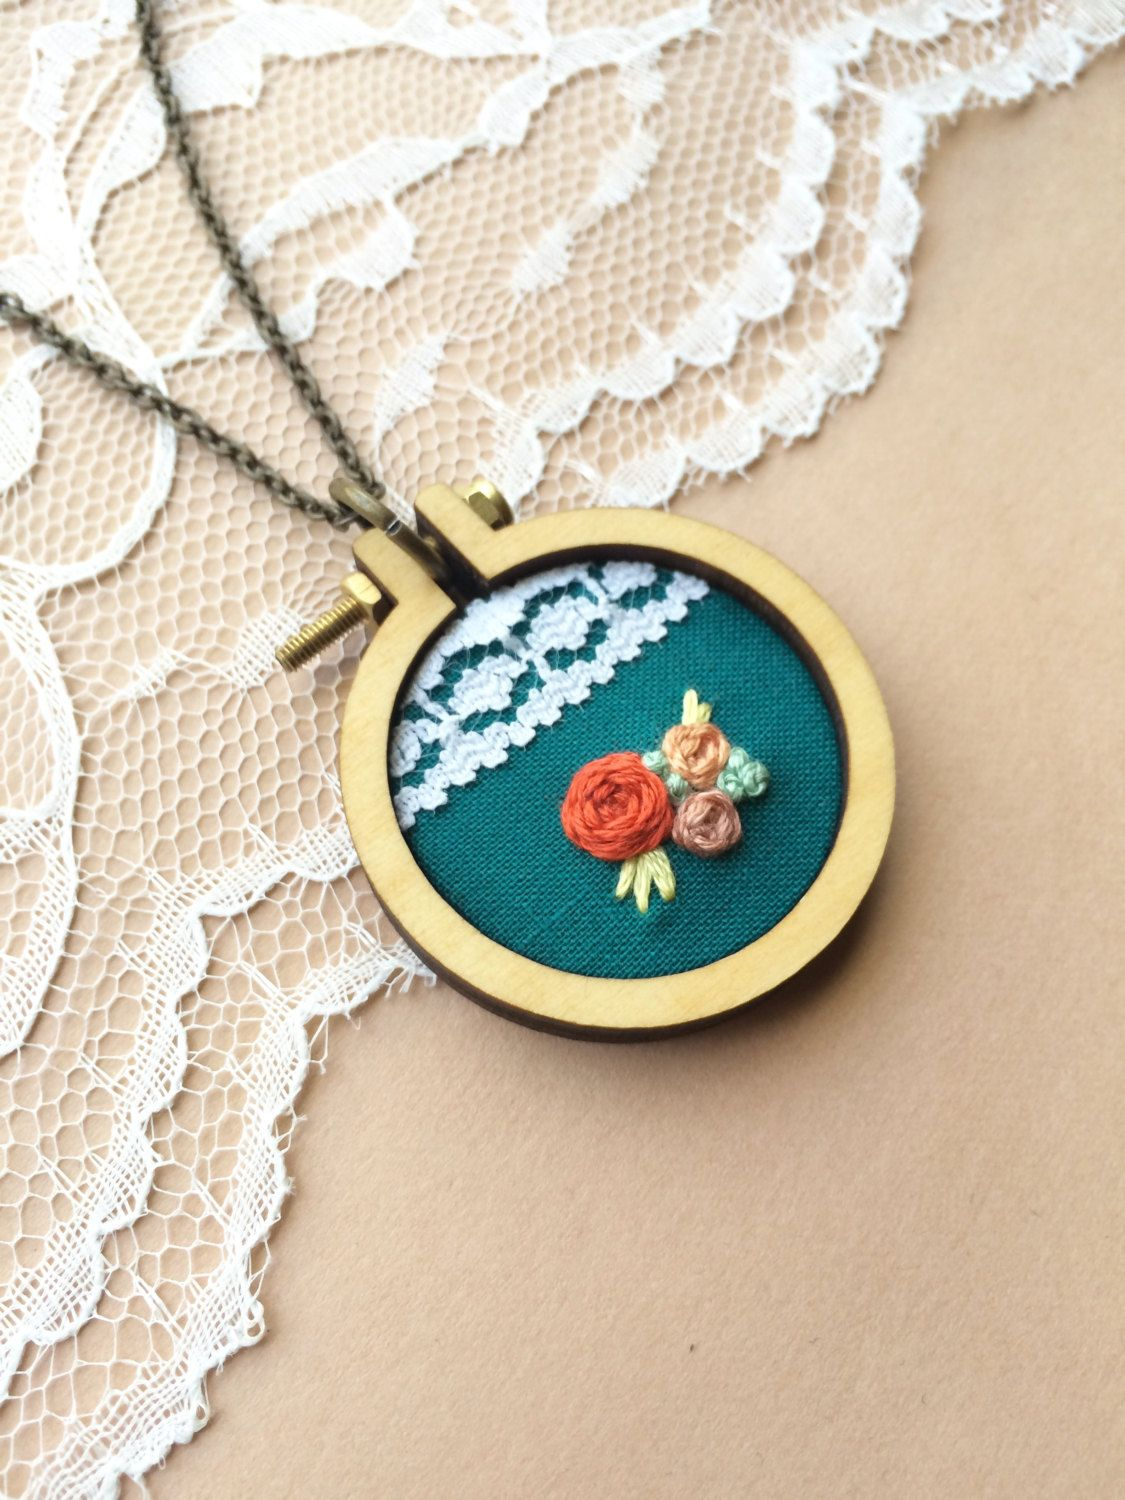 Hand Embroidered Mini Embroidery Hoop Necklace Featuring Vintage Lace: Dark Teal with Coral Roses // plaidlovethreads // Plaid Love Threads by PlaidLoveThreads on Etsy